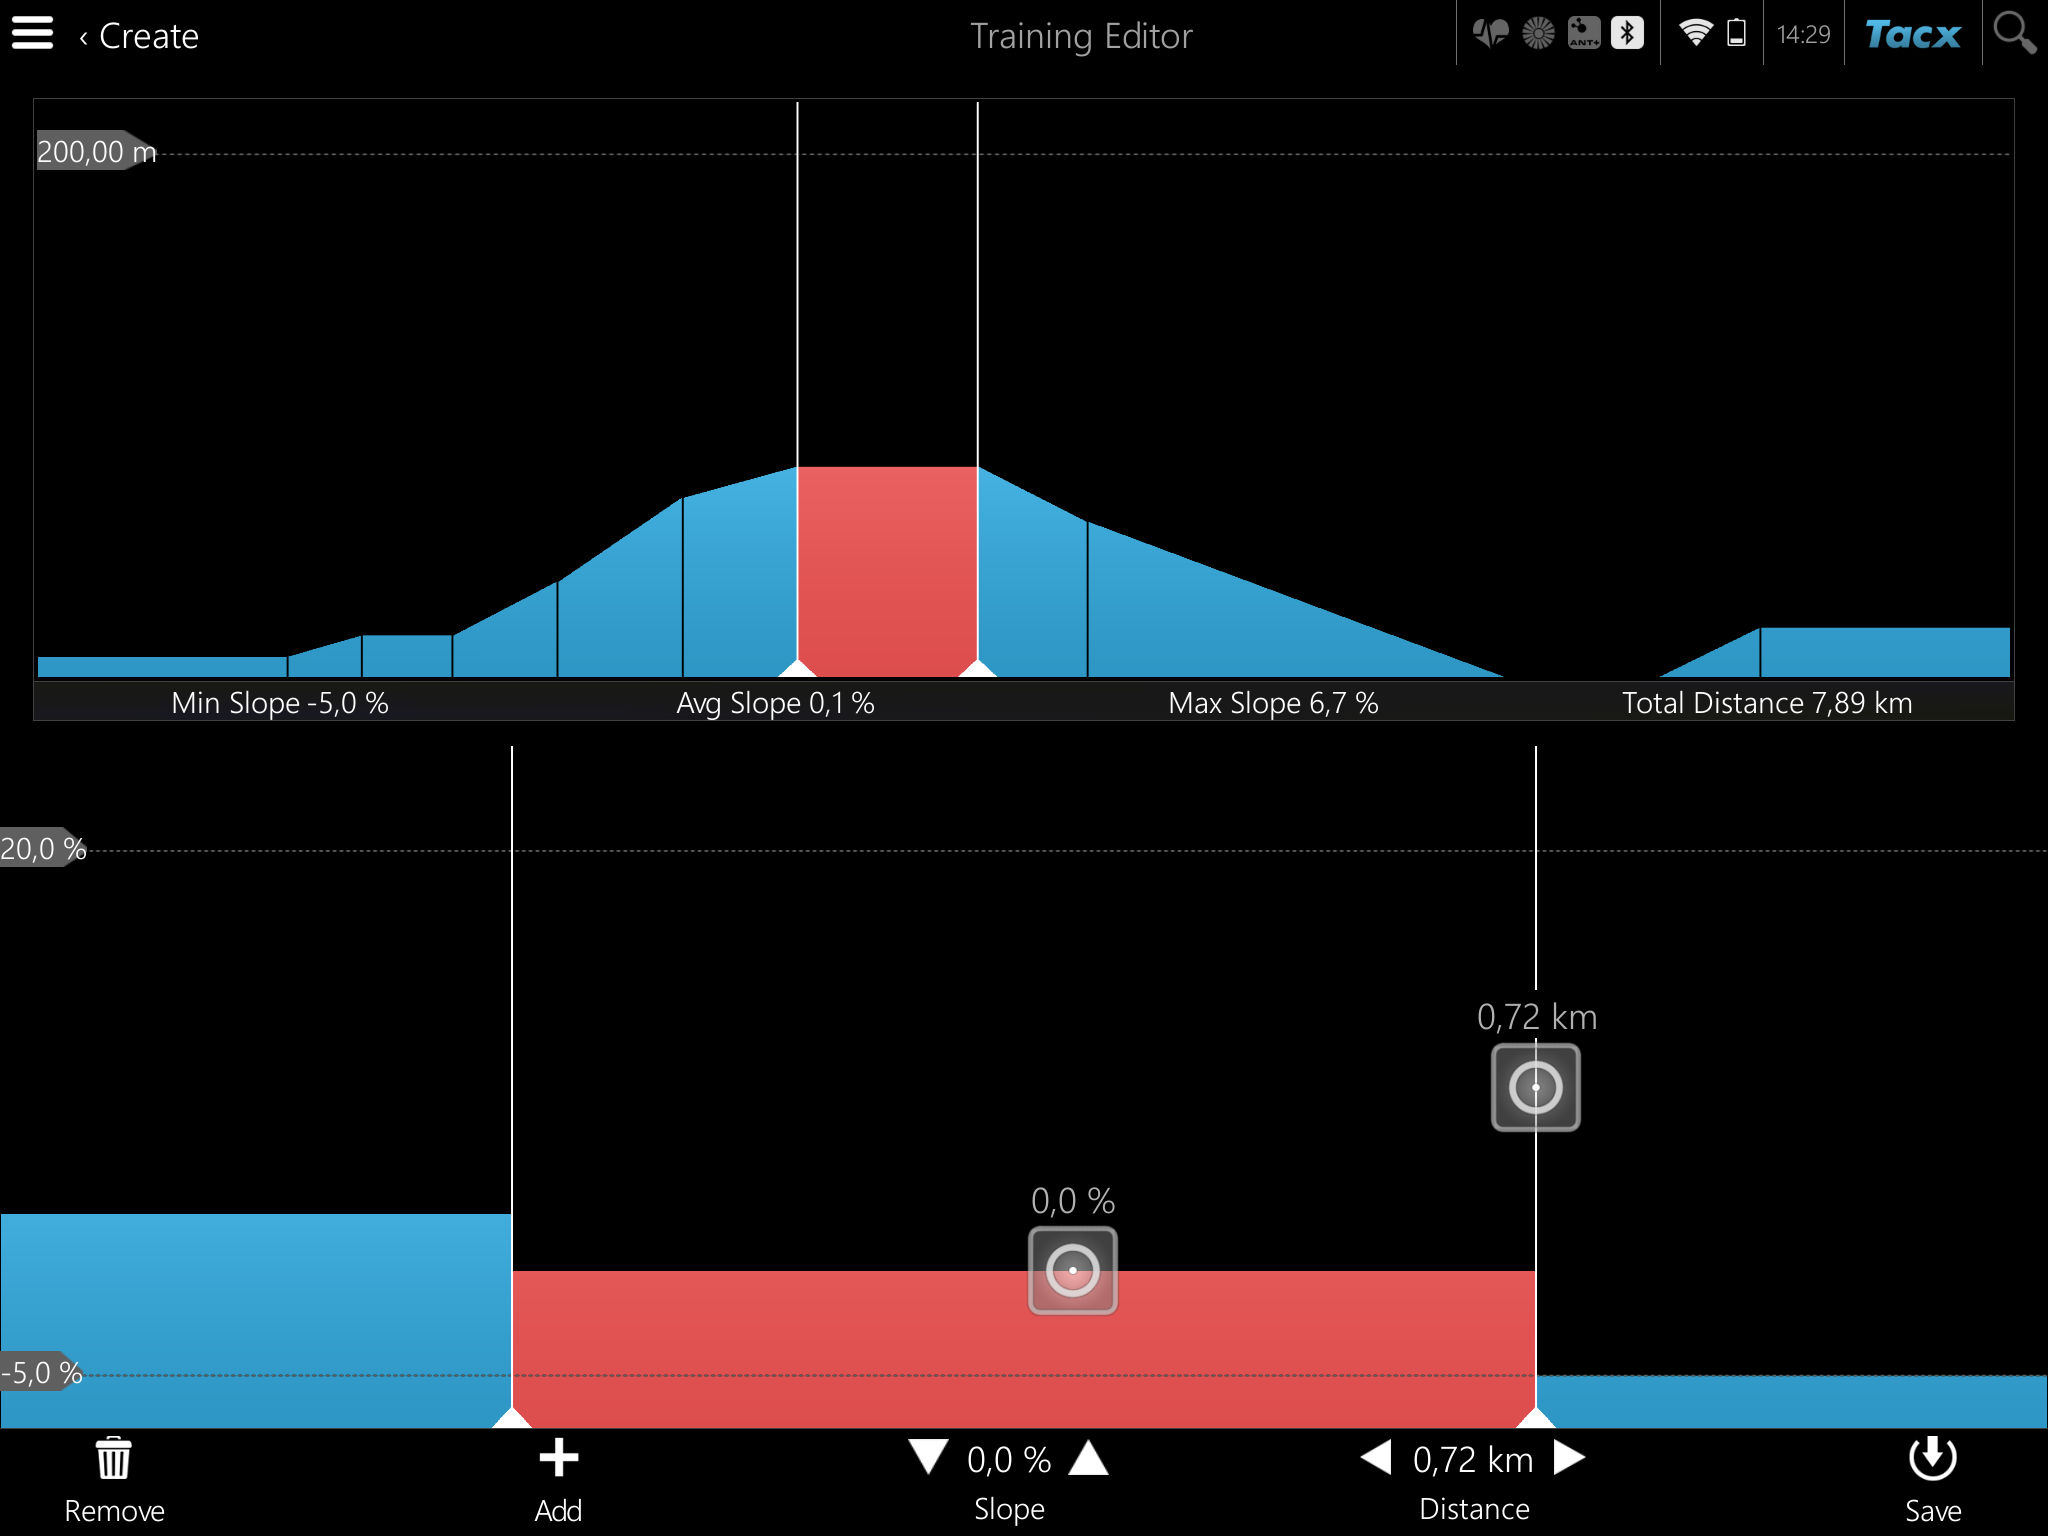 Tacx Cycling app App Ranking and Store Data | App Annie